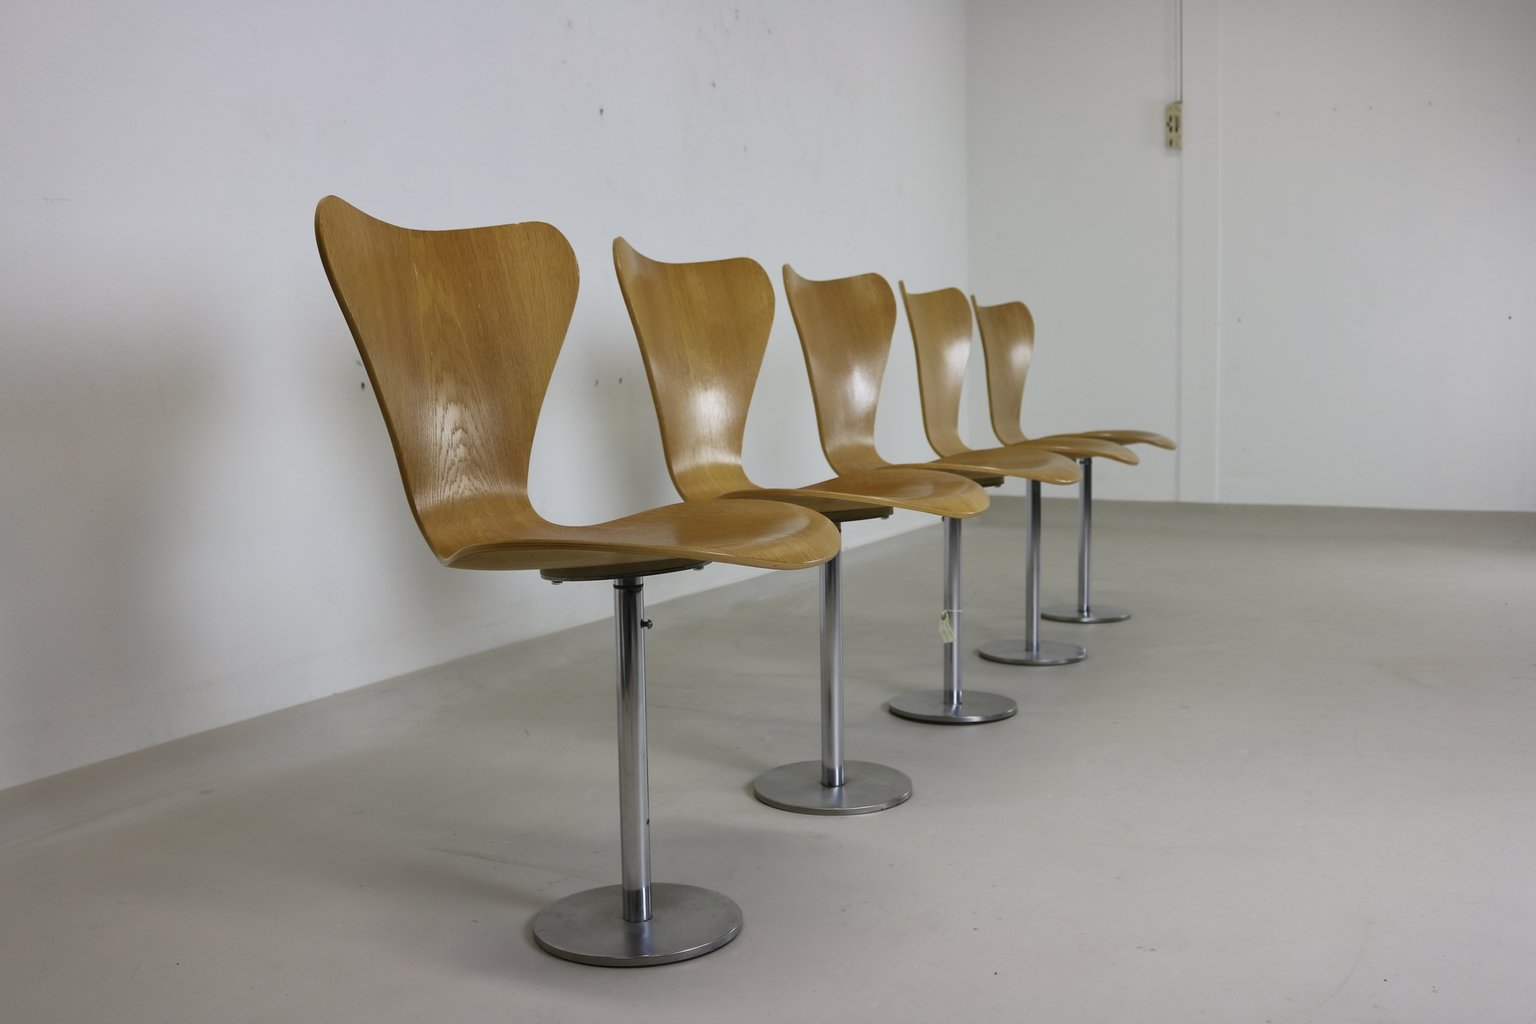 7 series chair by arne jacobsen for fritz hansen 1974 for sale at pamono. Black Bedroom Furniture Sets. Home Design Ideas